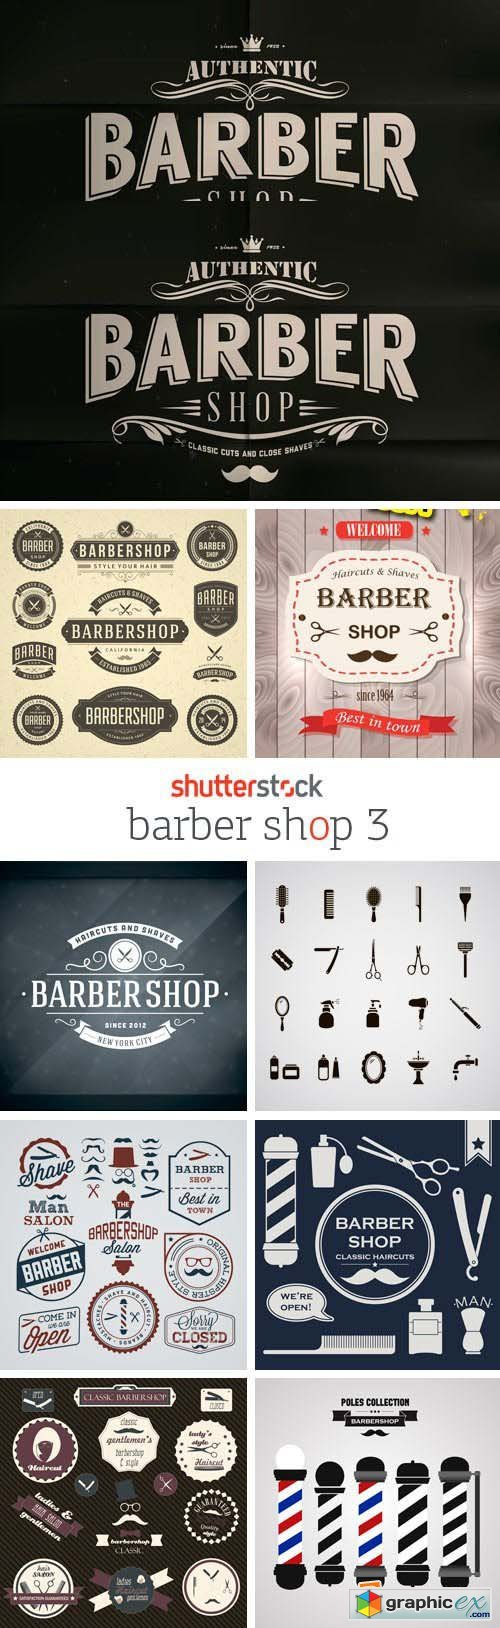 Amazing SS - Barber Shop 3, 25xEPS